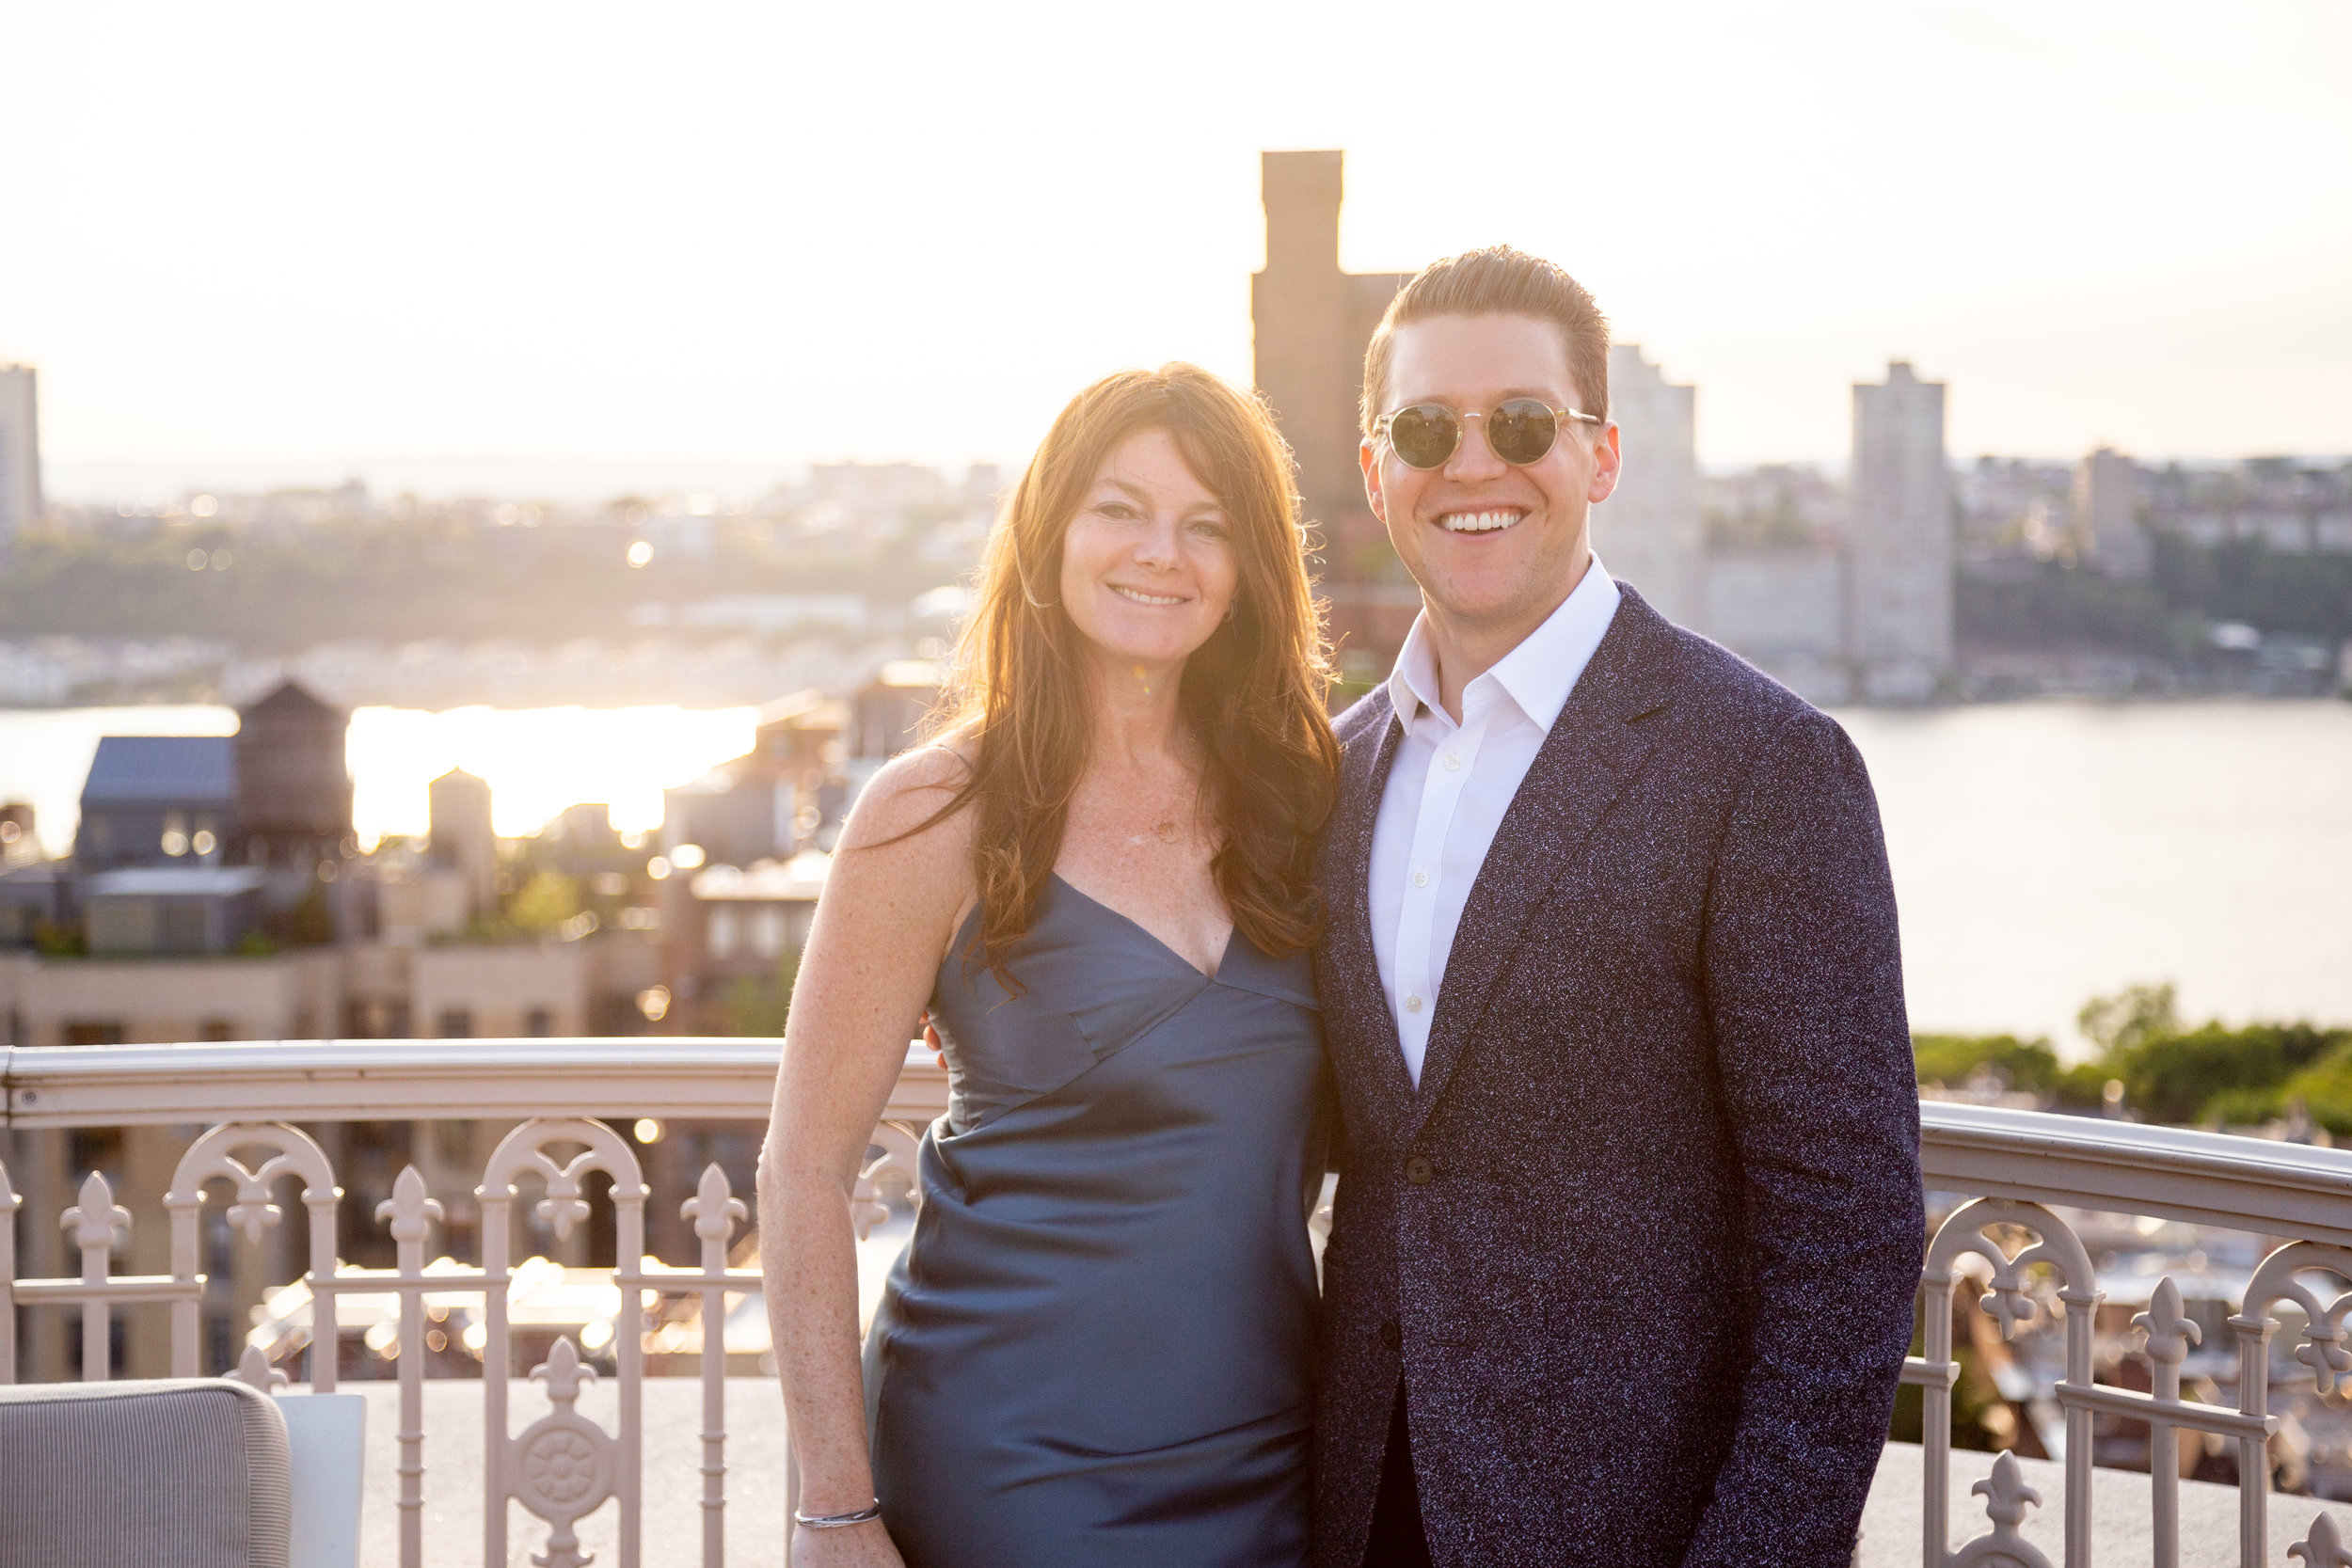 J ennifer Kalish and Kyle Egan of Douglas Elliman